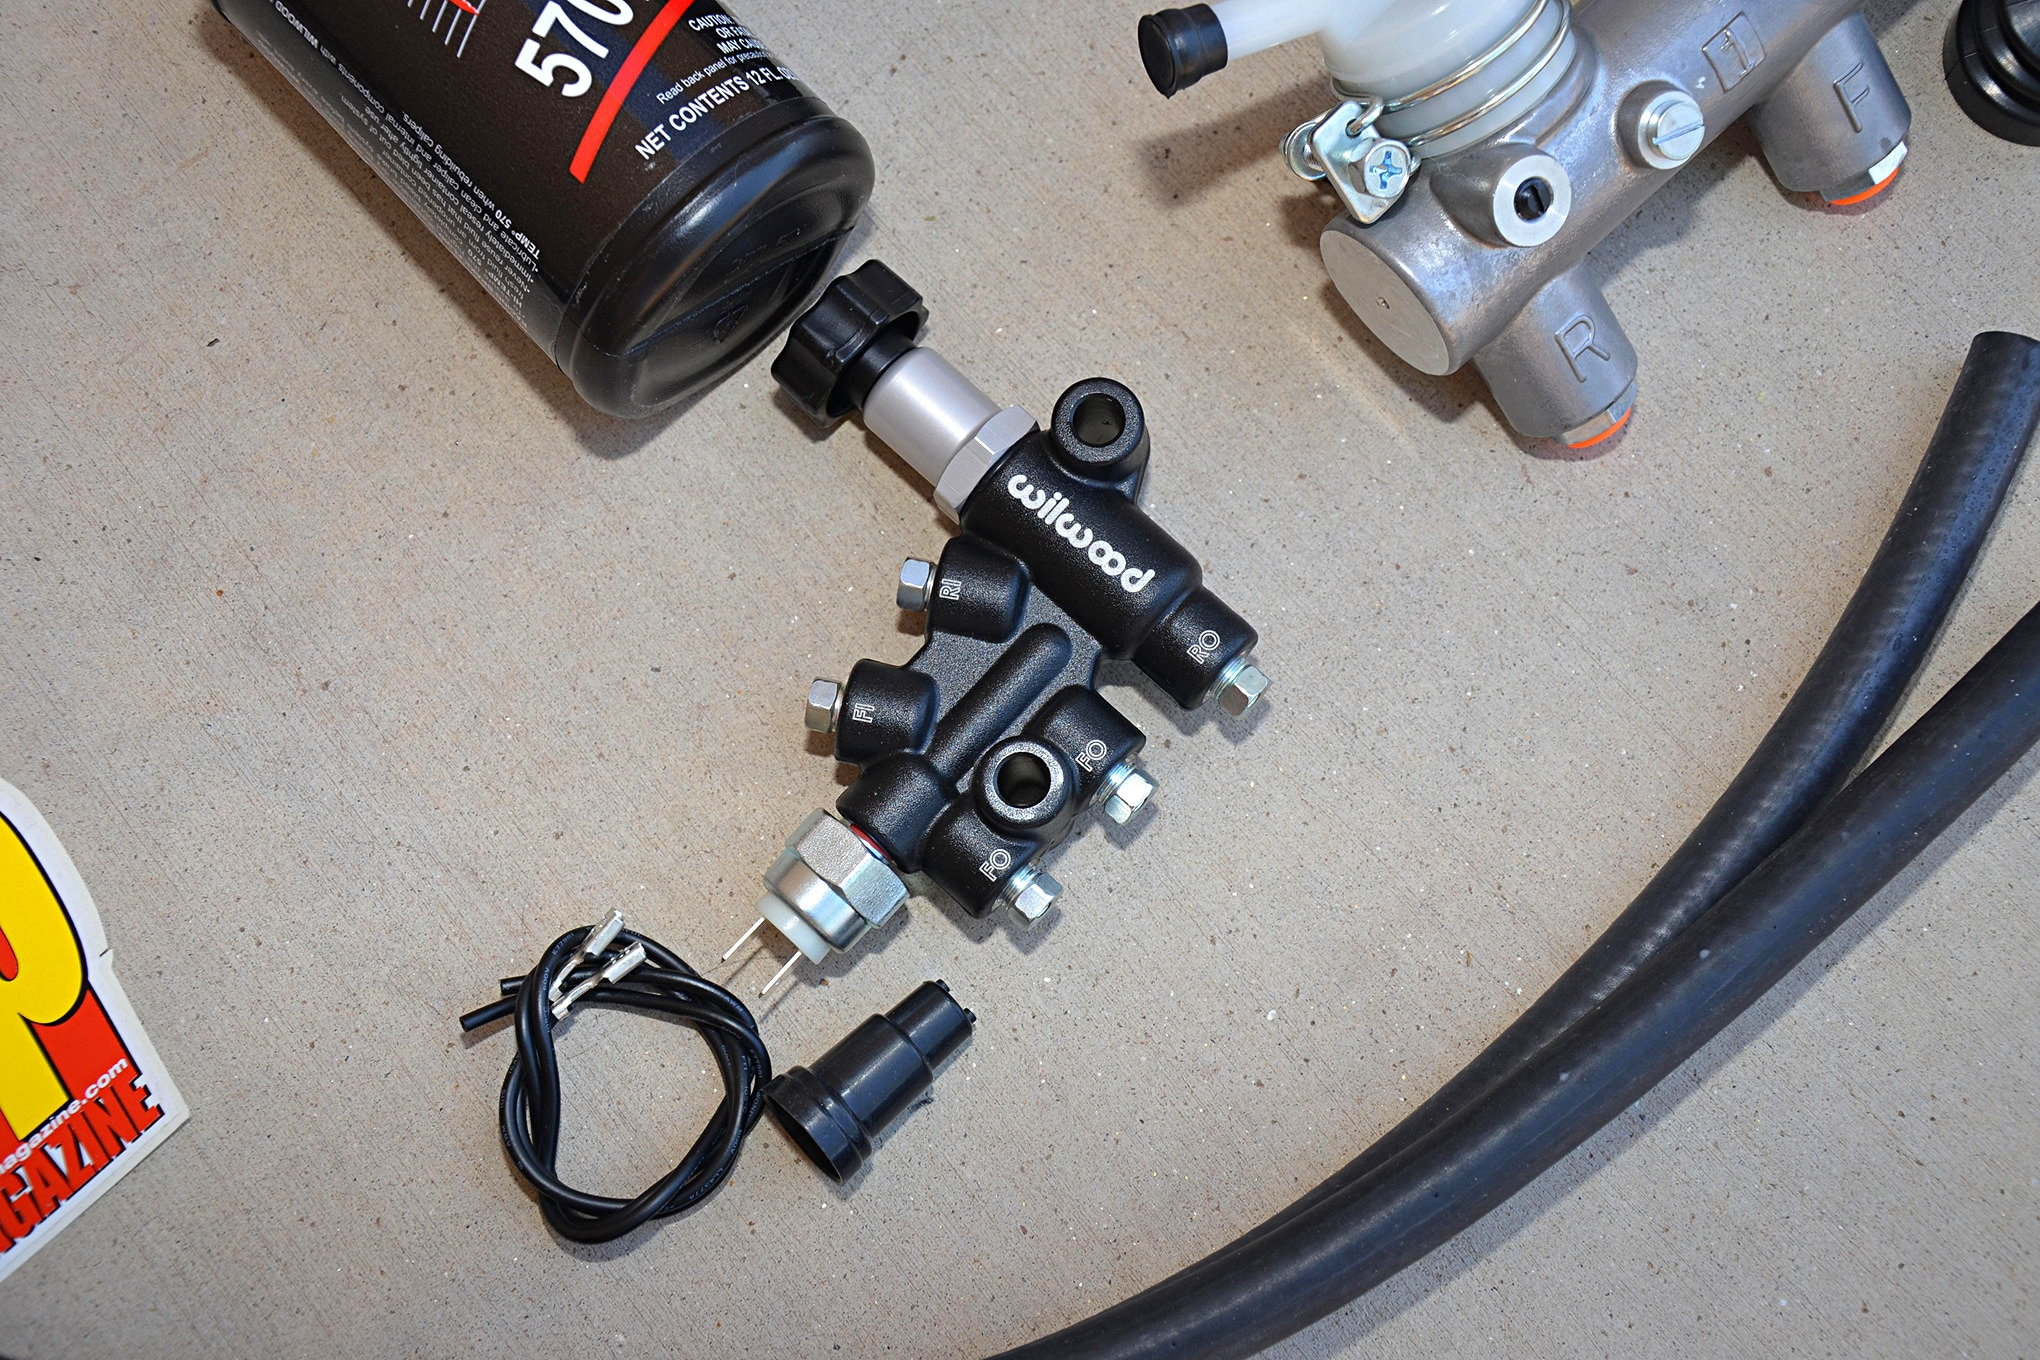 This is an adjustable proportioning valve from Wilwood Disc Brakes. By turning the knob you can reduce how much fluid travels to the rear brakes. This allows you to fine tune how much work the front and rear brake circuits are doing when you stop. Adjustable proportioning valves are also helpful when swapping axles and adding larger, or disc brakes to your rear axle.